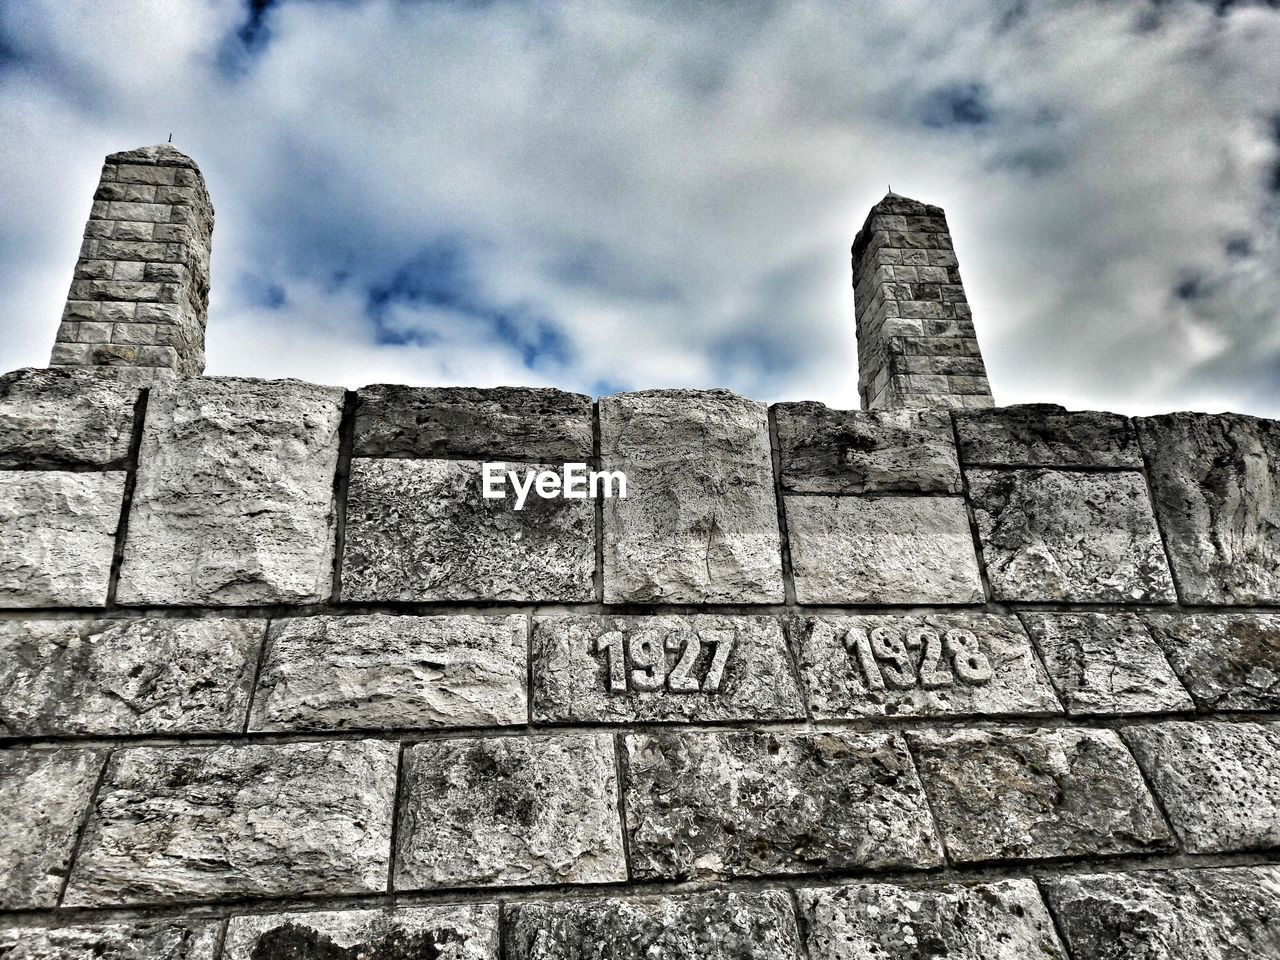 architecture, built structure, history, low angle view, cloud - sky, building exterior, ancient civilization, sky, old ruin, stone material, day, ancient, brick wall, outdoors, castle, no people